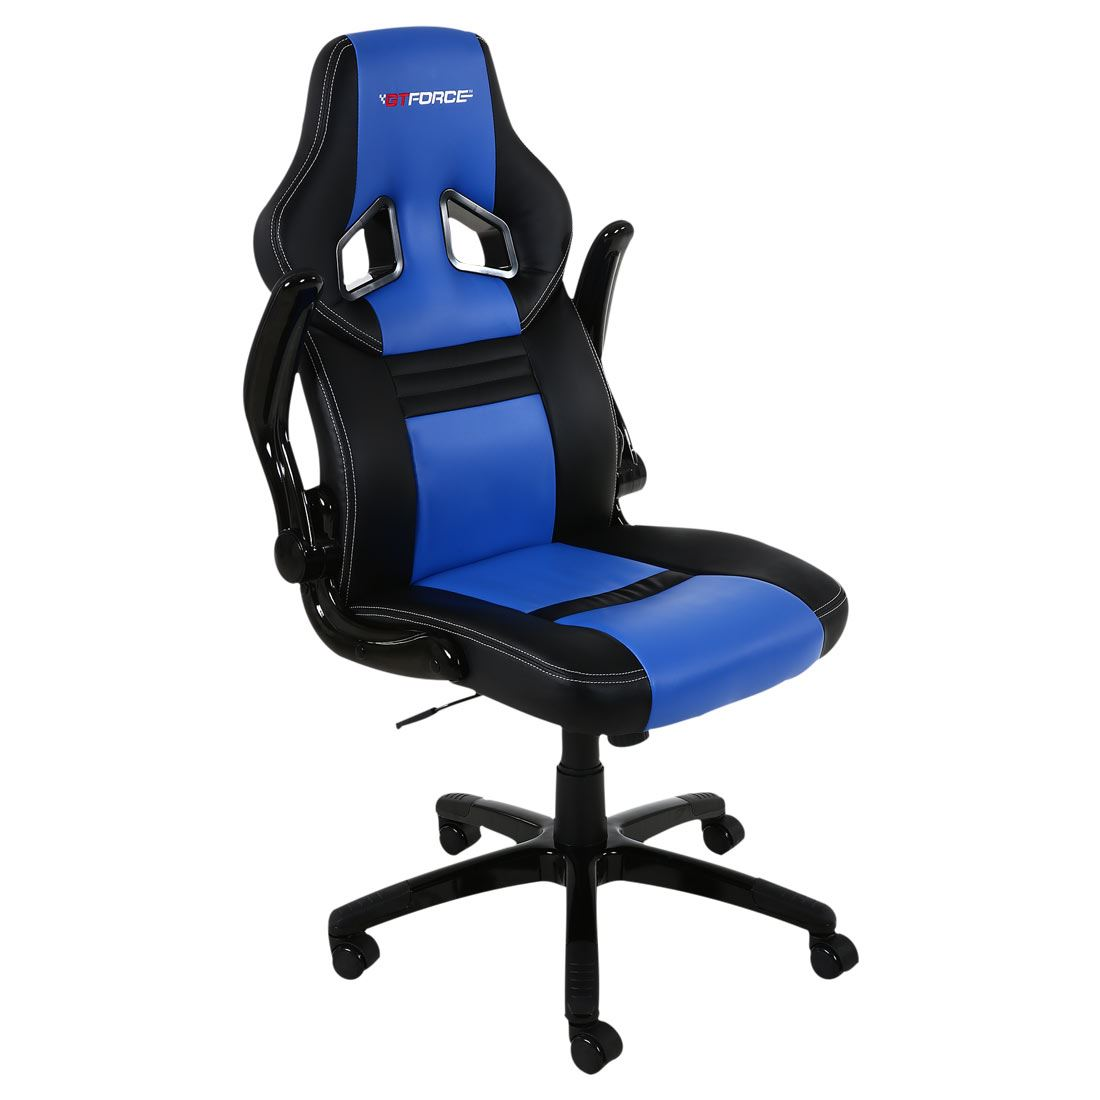 GTFORCE-SPRINT-LEATHER-GAMING-SPORT-RACING-CAR-OFFICE-CHAIR-PC-DESK-ADJUSTABLE